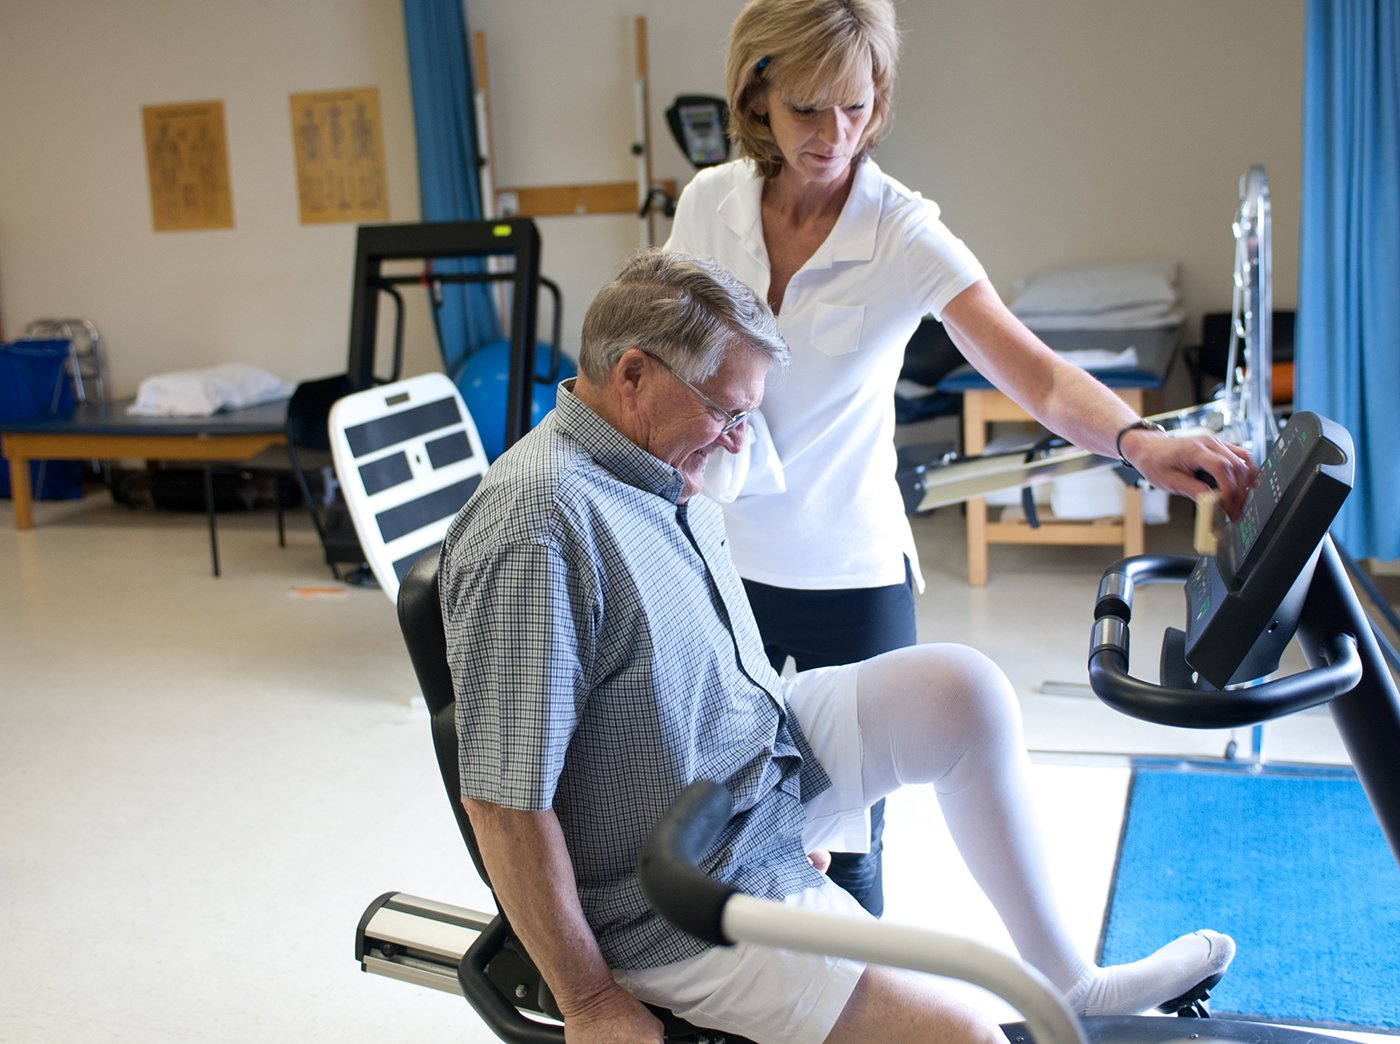 patient on a bike while therapist watches over